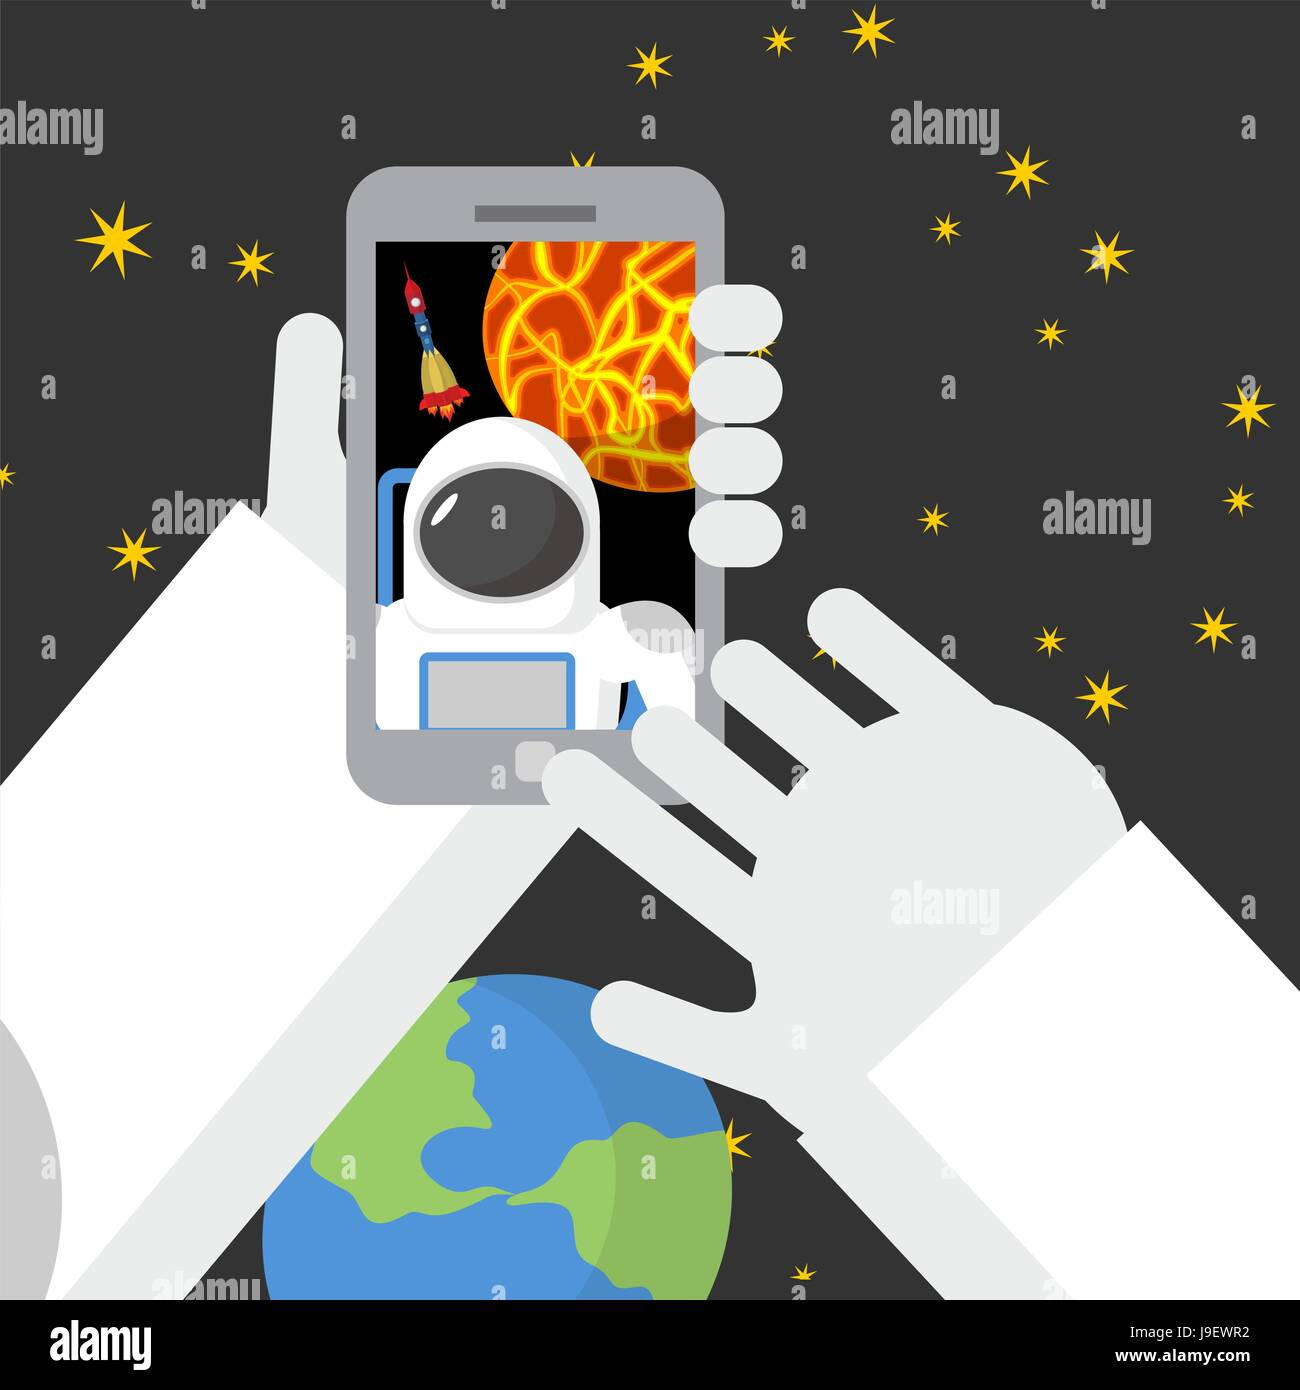 Selfie in space. Astronaut photographed myself on phone against backdrop of a rocket. Vector illustration. - Stock Vector